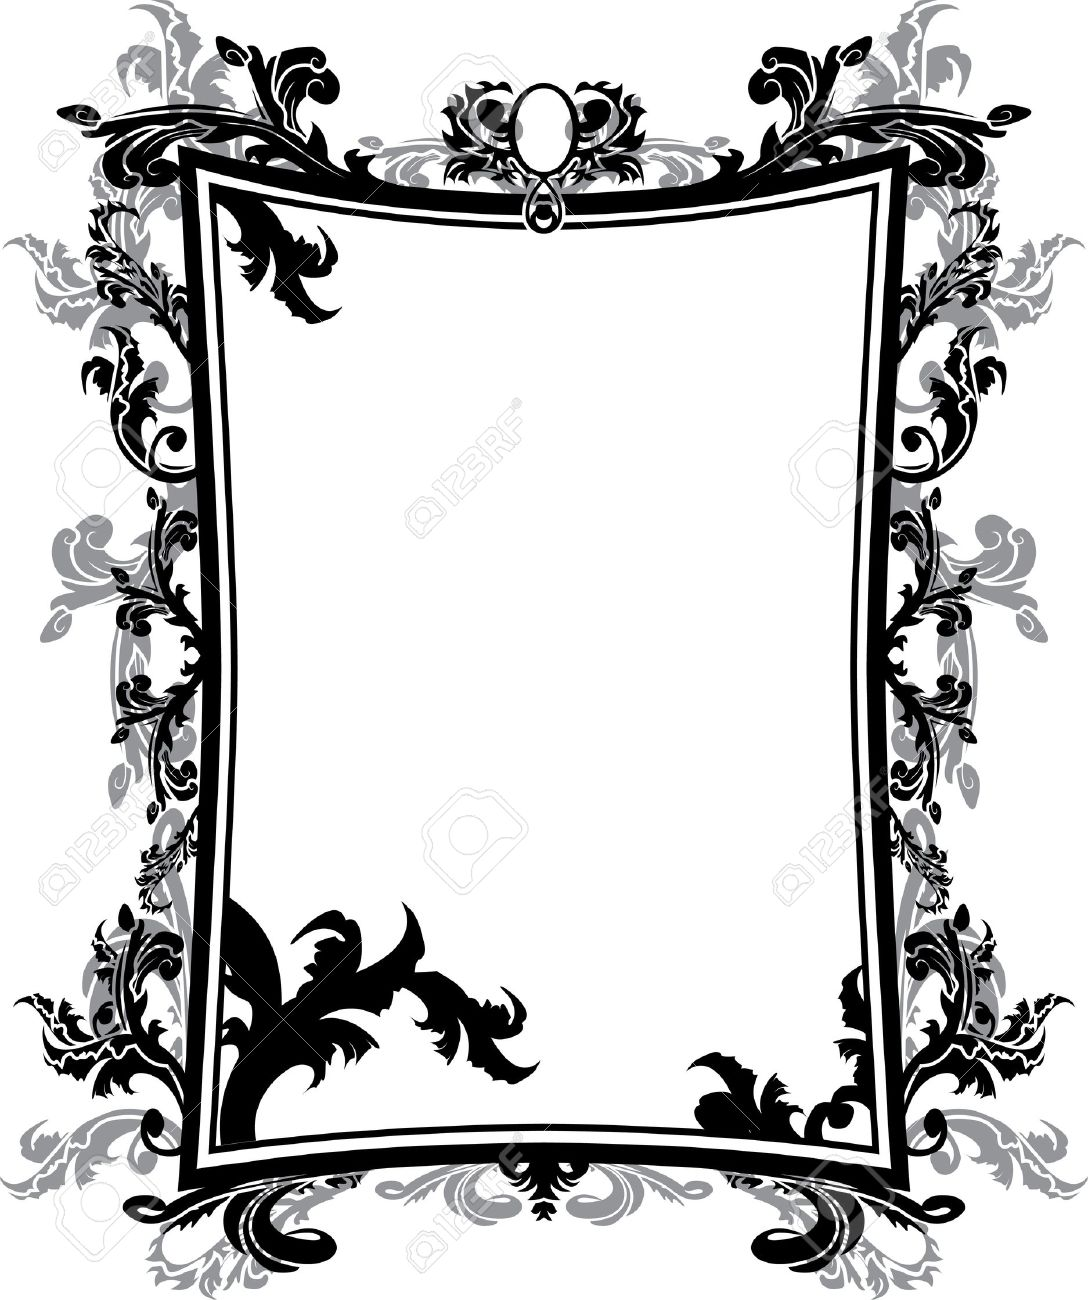 Ornate Vintage Frame Stencil Royalty Free Cliparts, Vectors, And.